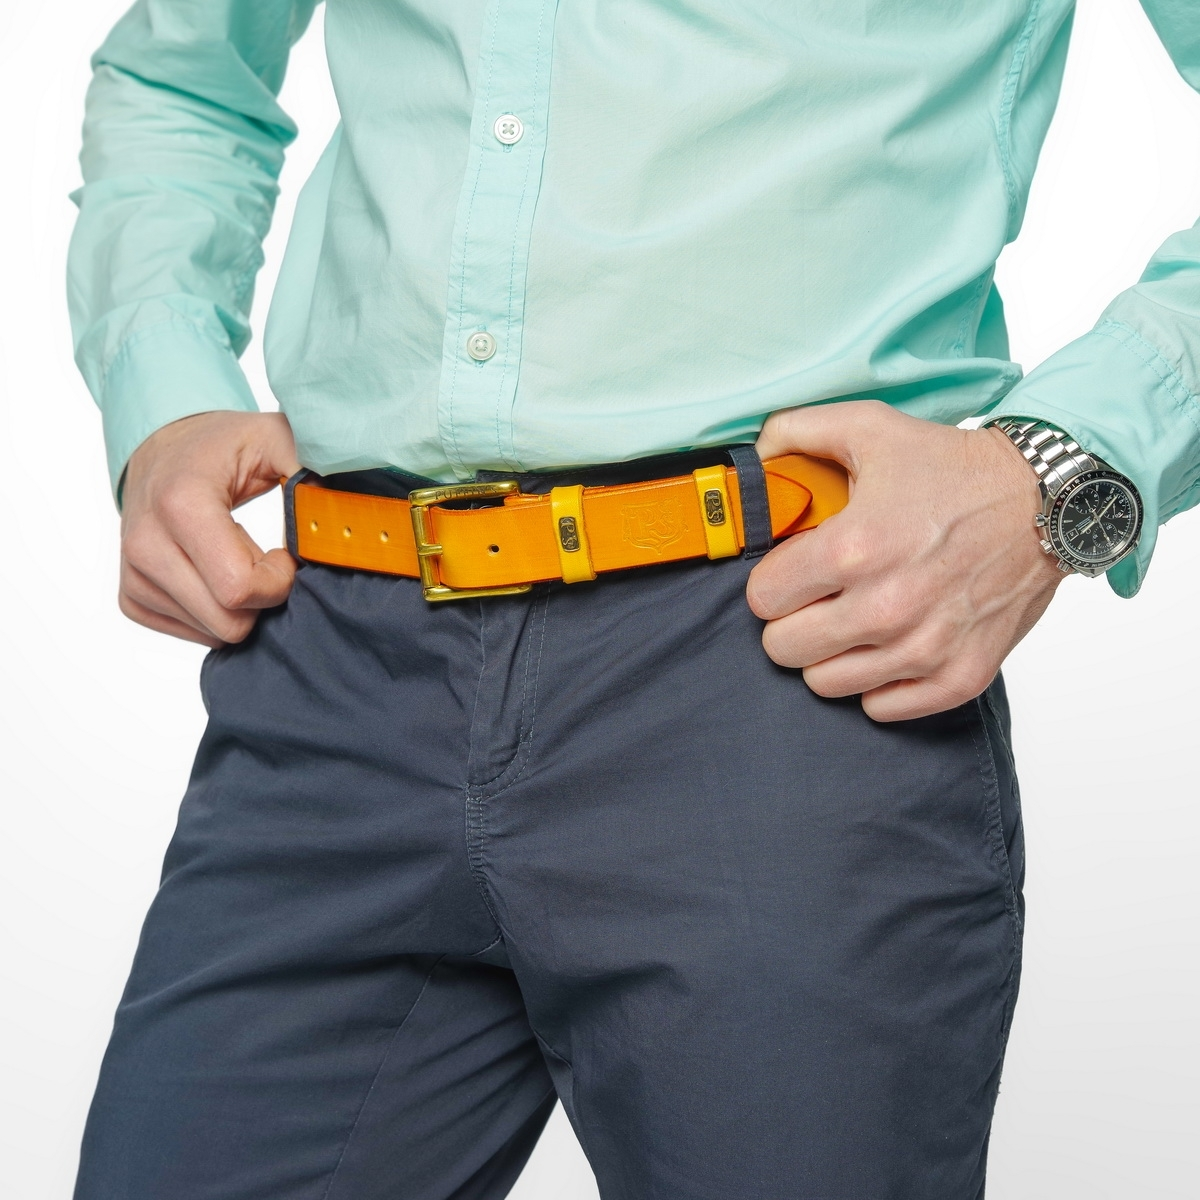 32mm traditional belt for jeans bright mustard